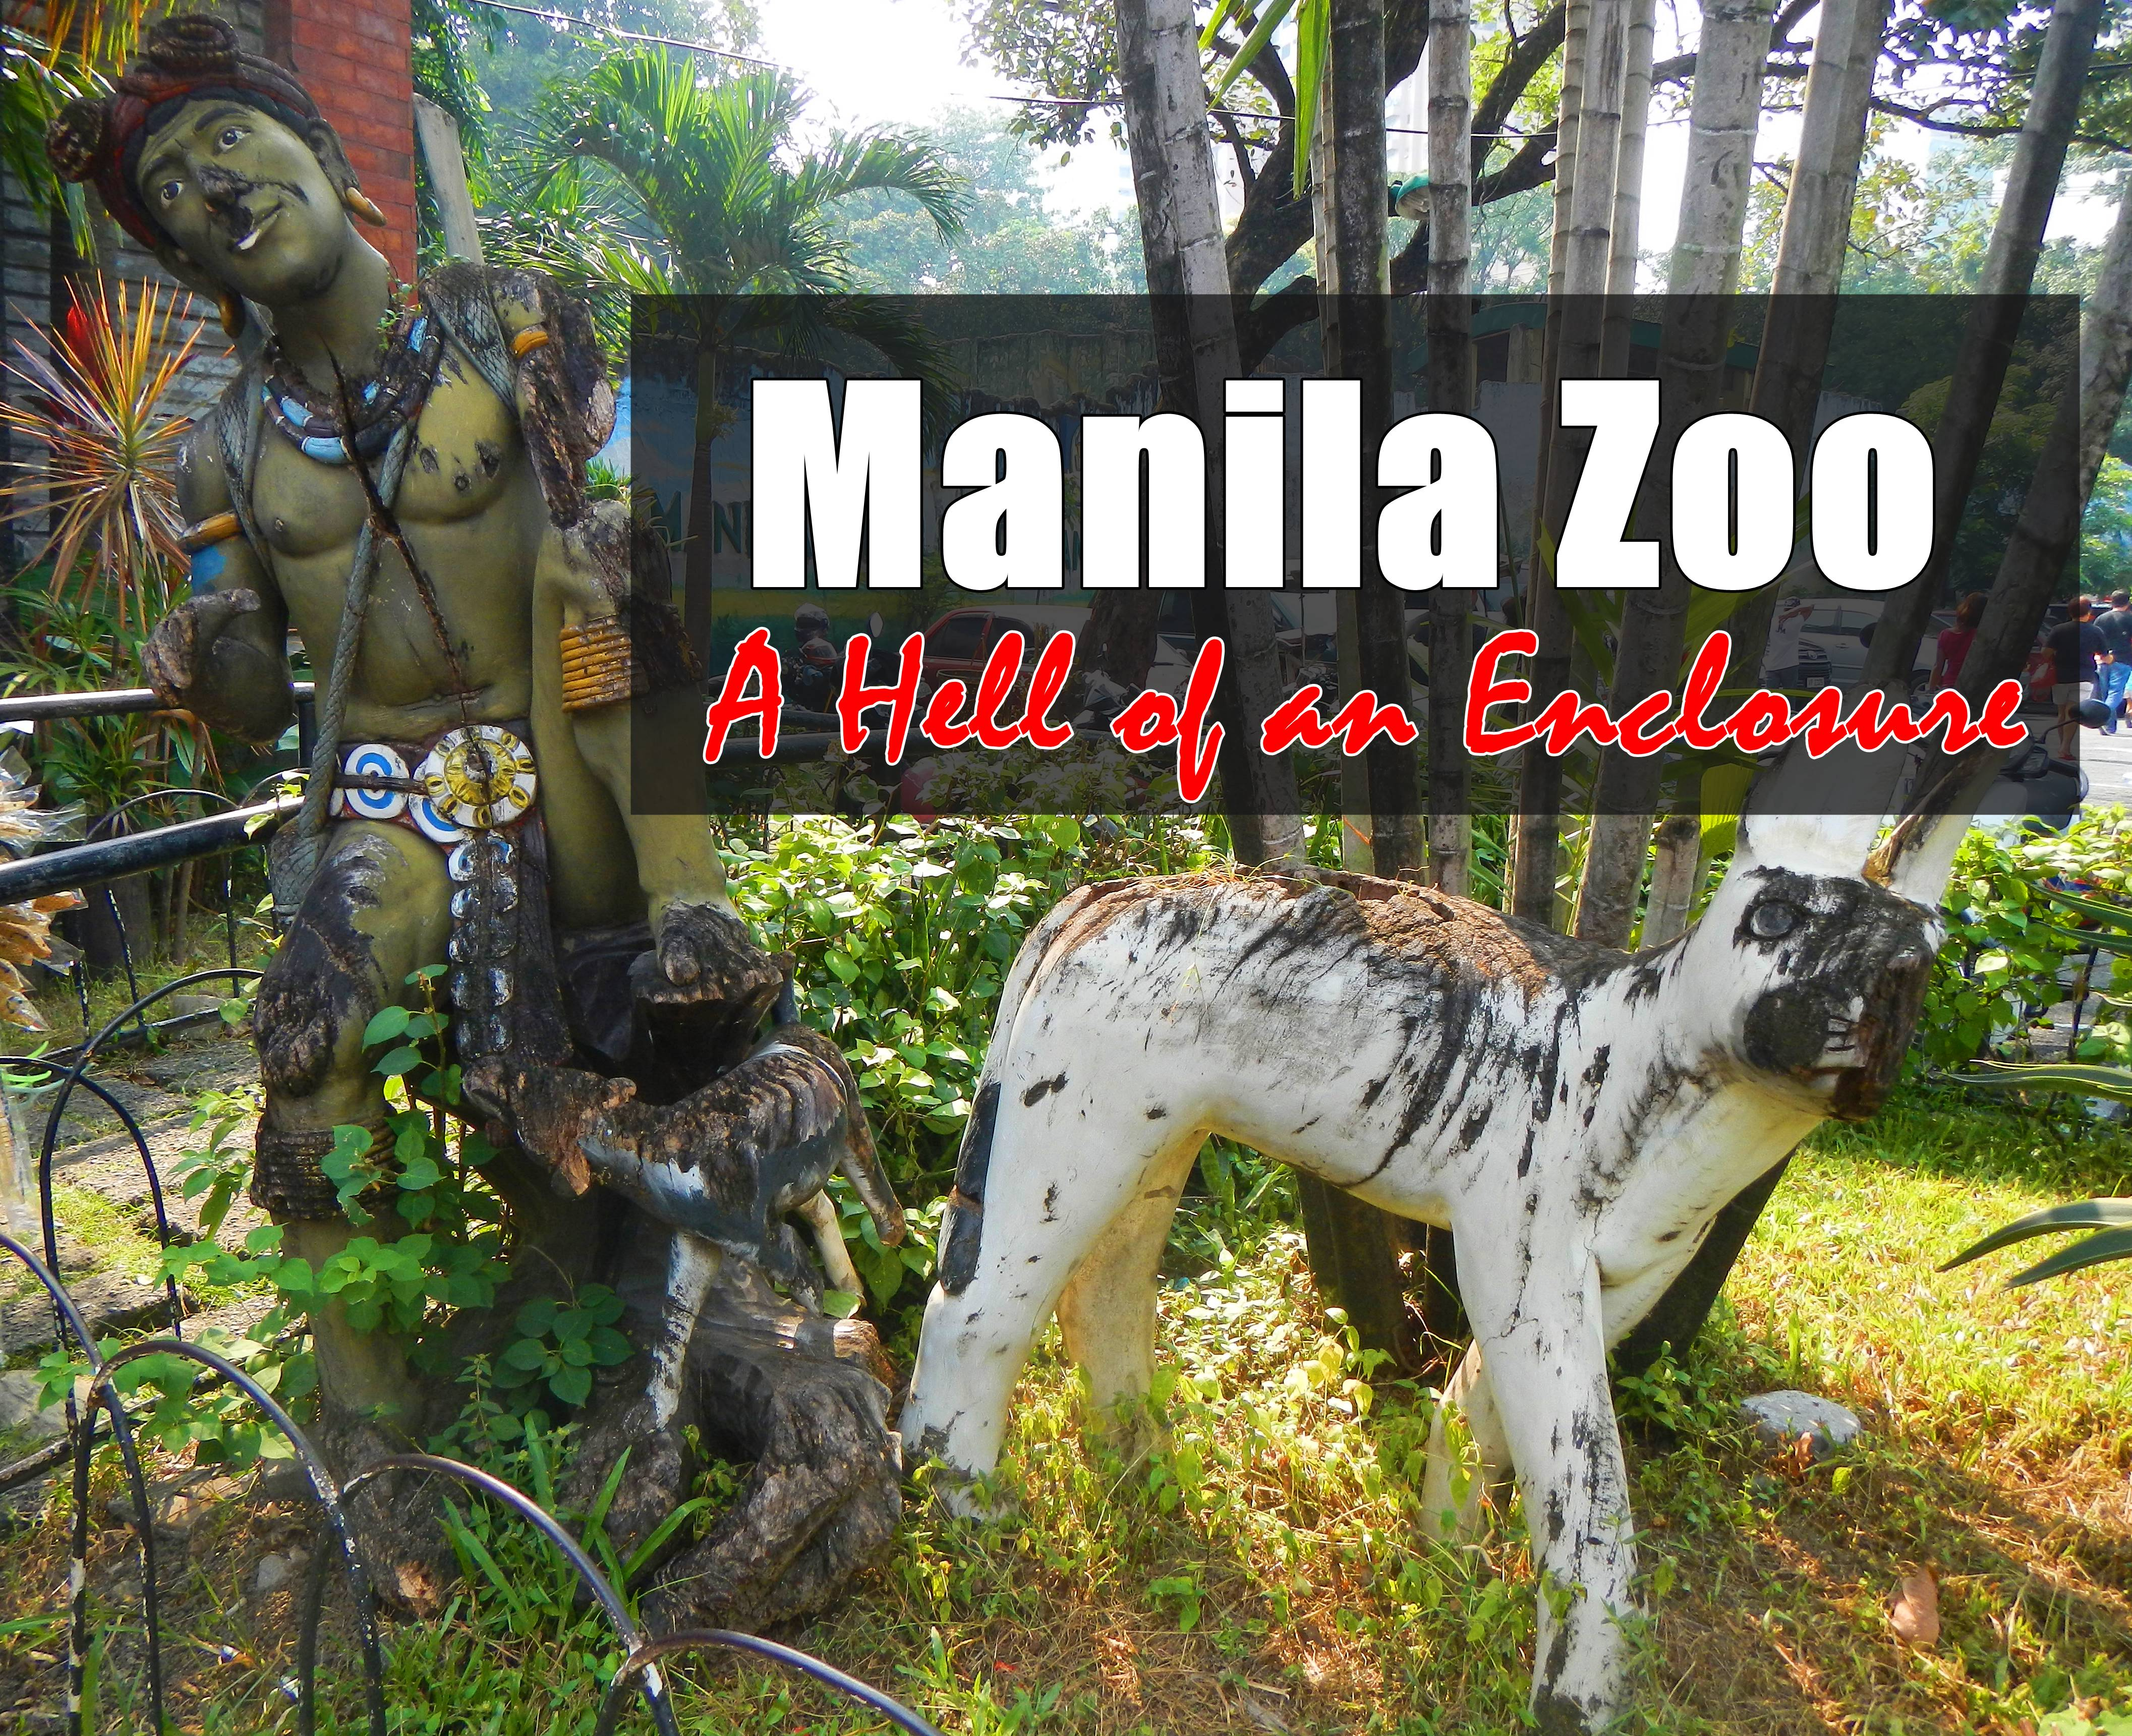 manila zoo July 17, 2011 at 10:27 pm revisiting manila zoo first of all, i want to apologize for hastily reposting a blog post which wasn't really well researched and used.